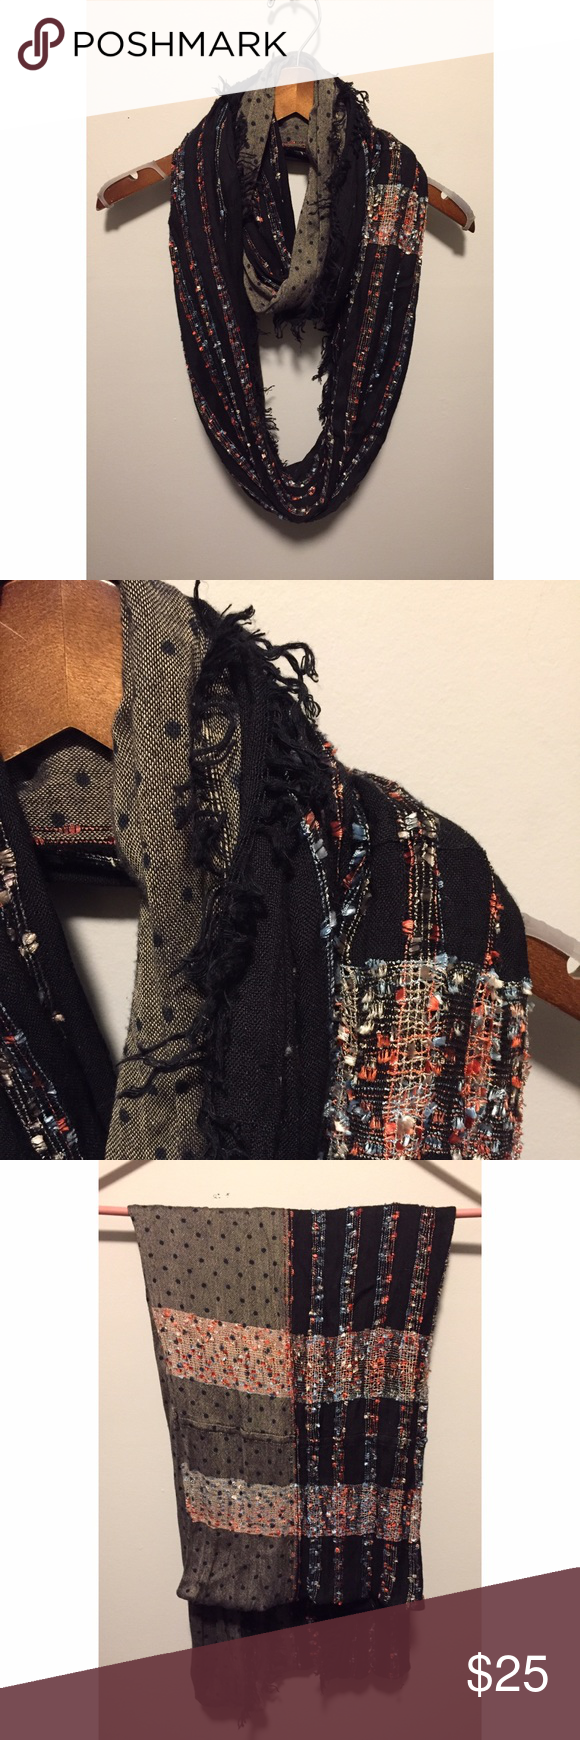 Anthropologie Mixed Media Infinity Scarf Anthropologie knit infinity scarf features a combination of patterns. Never worn. In perfect condition. Anthropologie Accessories Scarves & Wraps